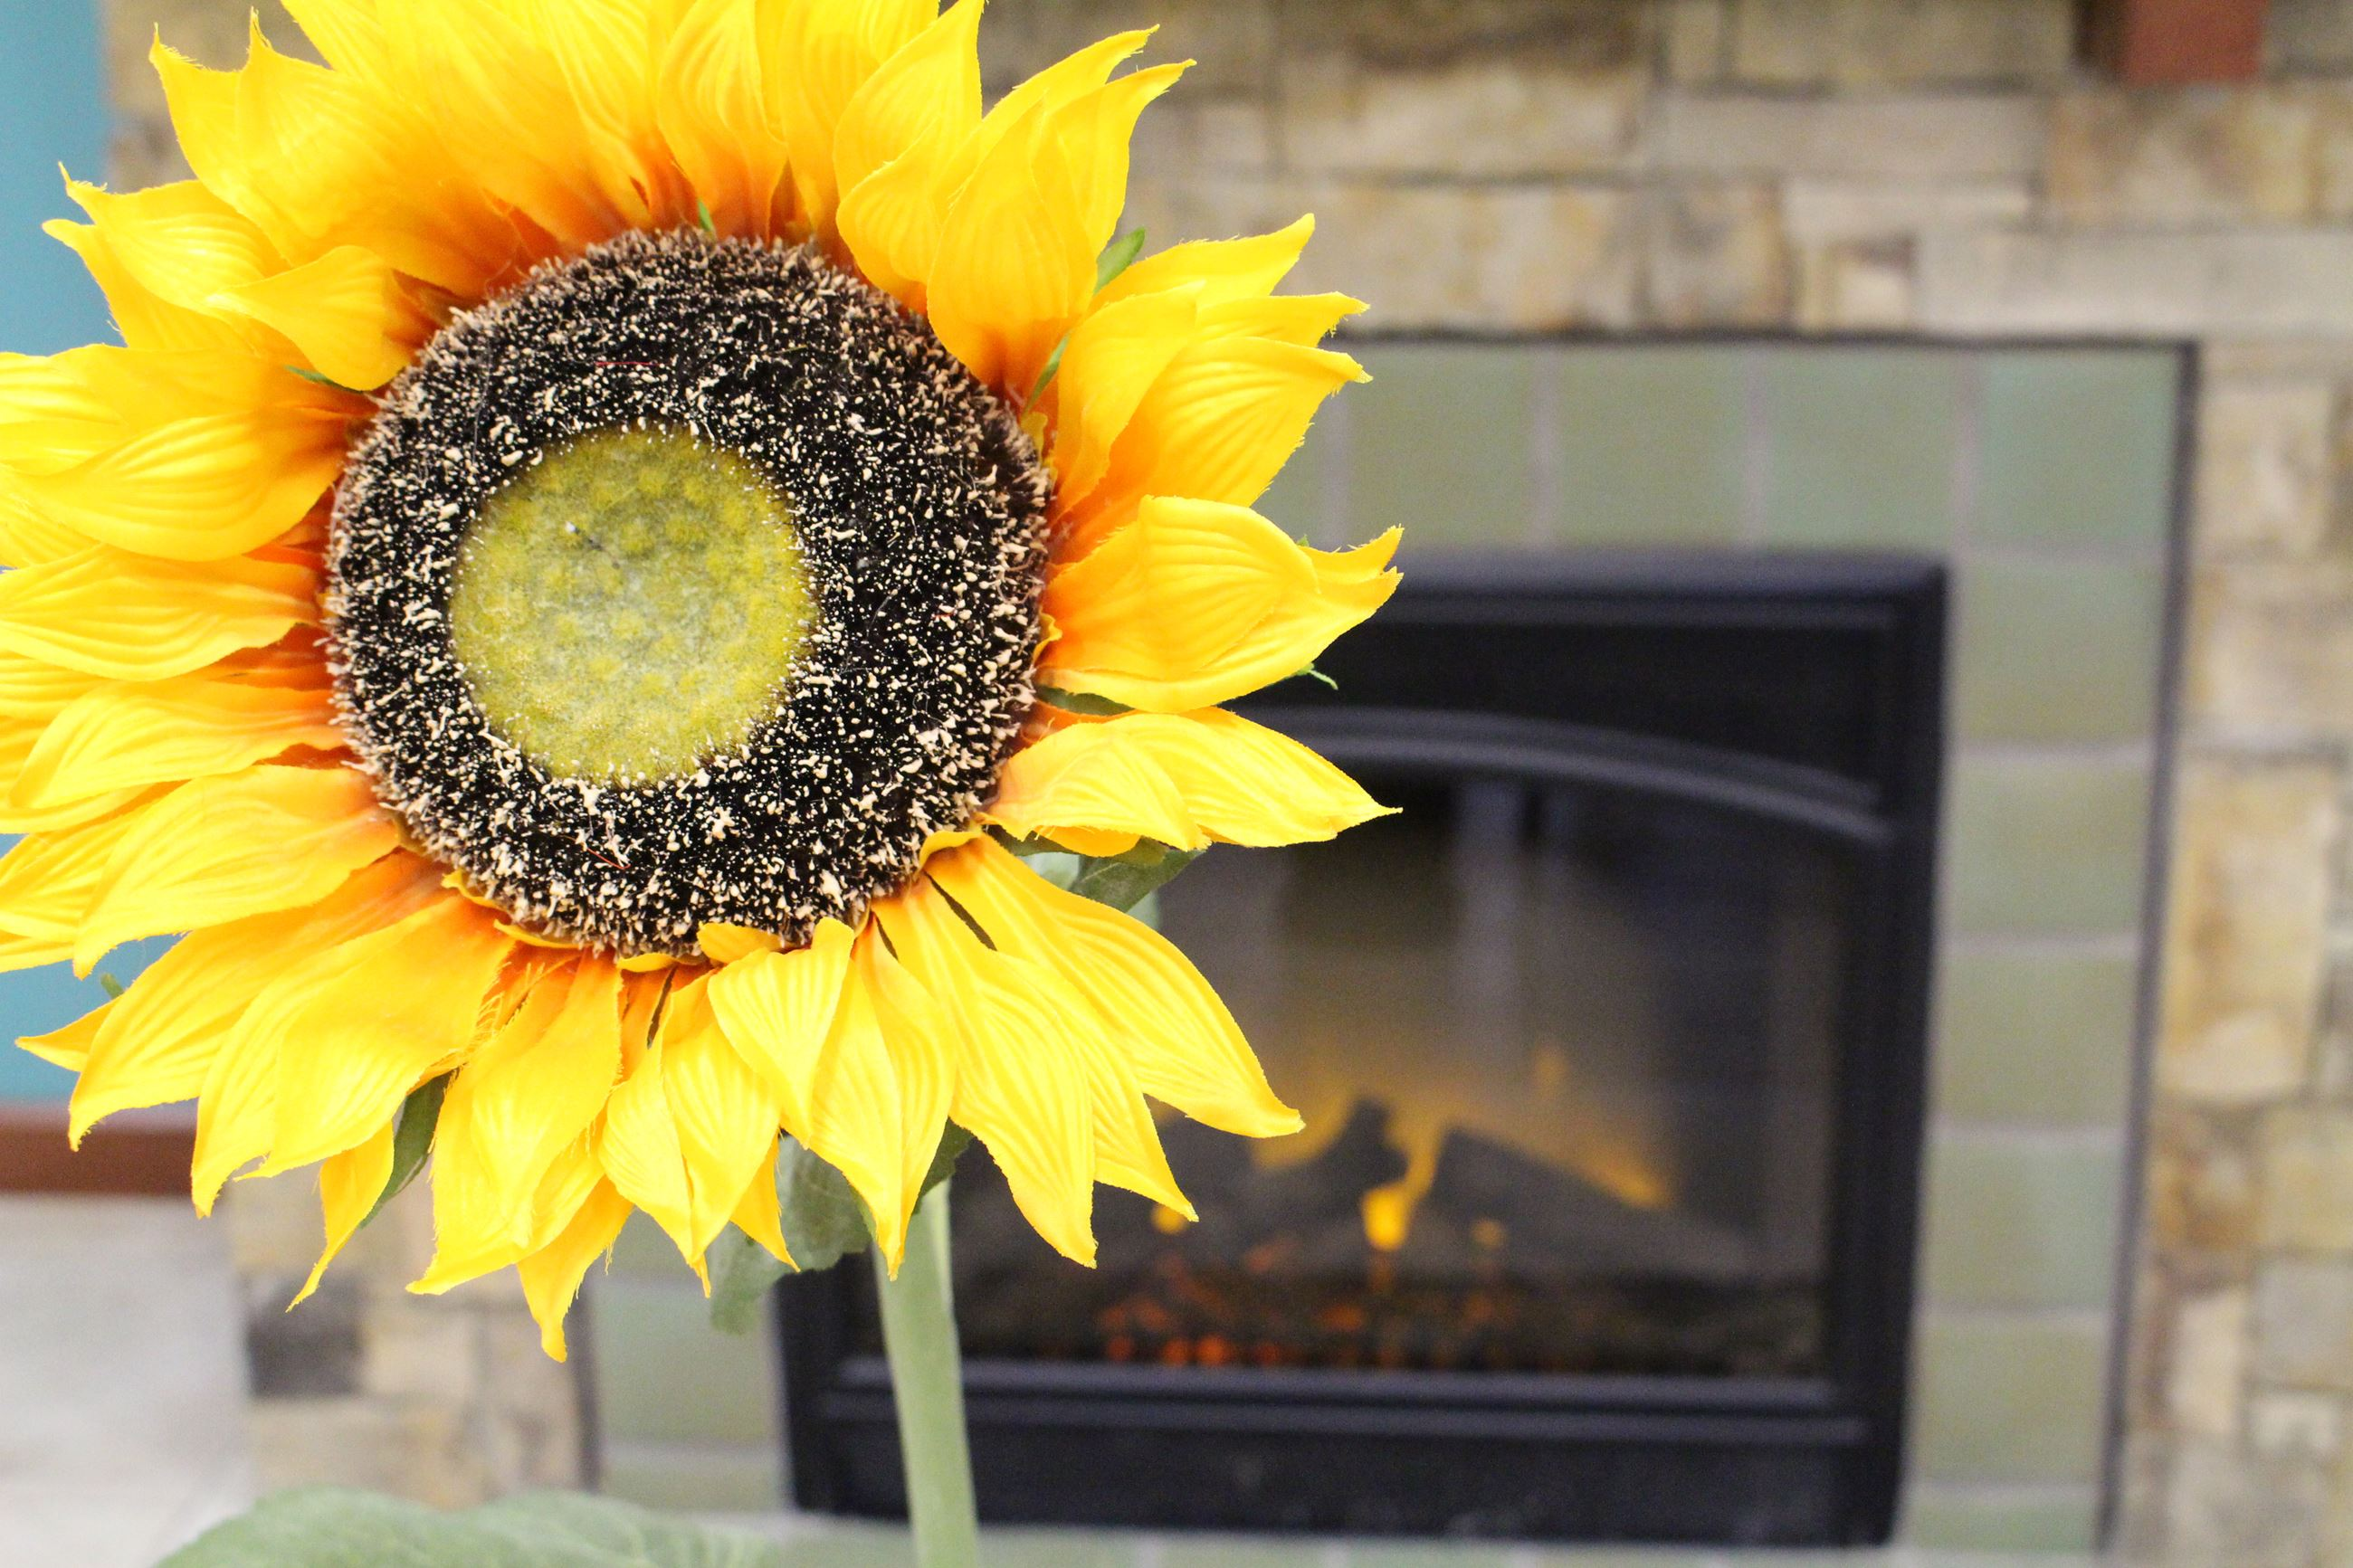 Closeup photo of a yellow sunflower with a fireplace in the background